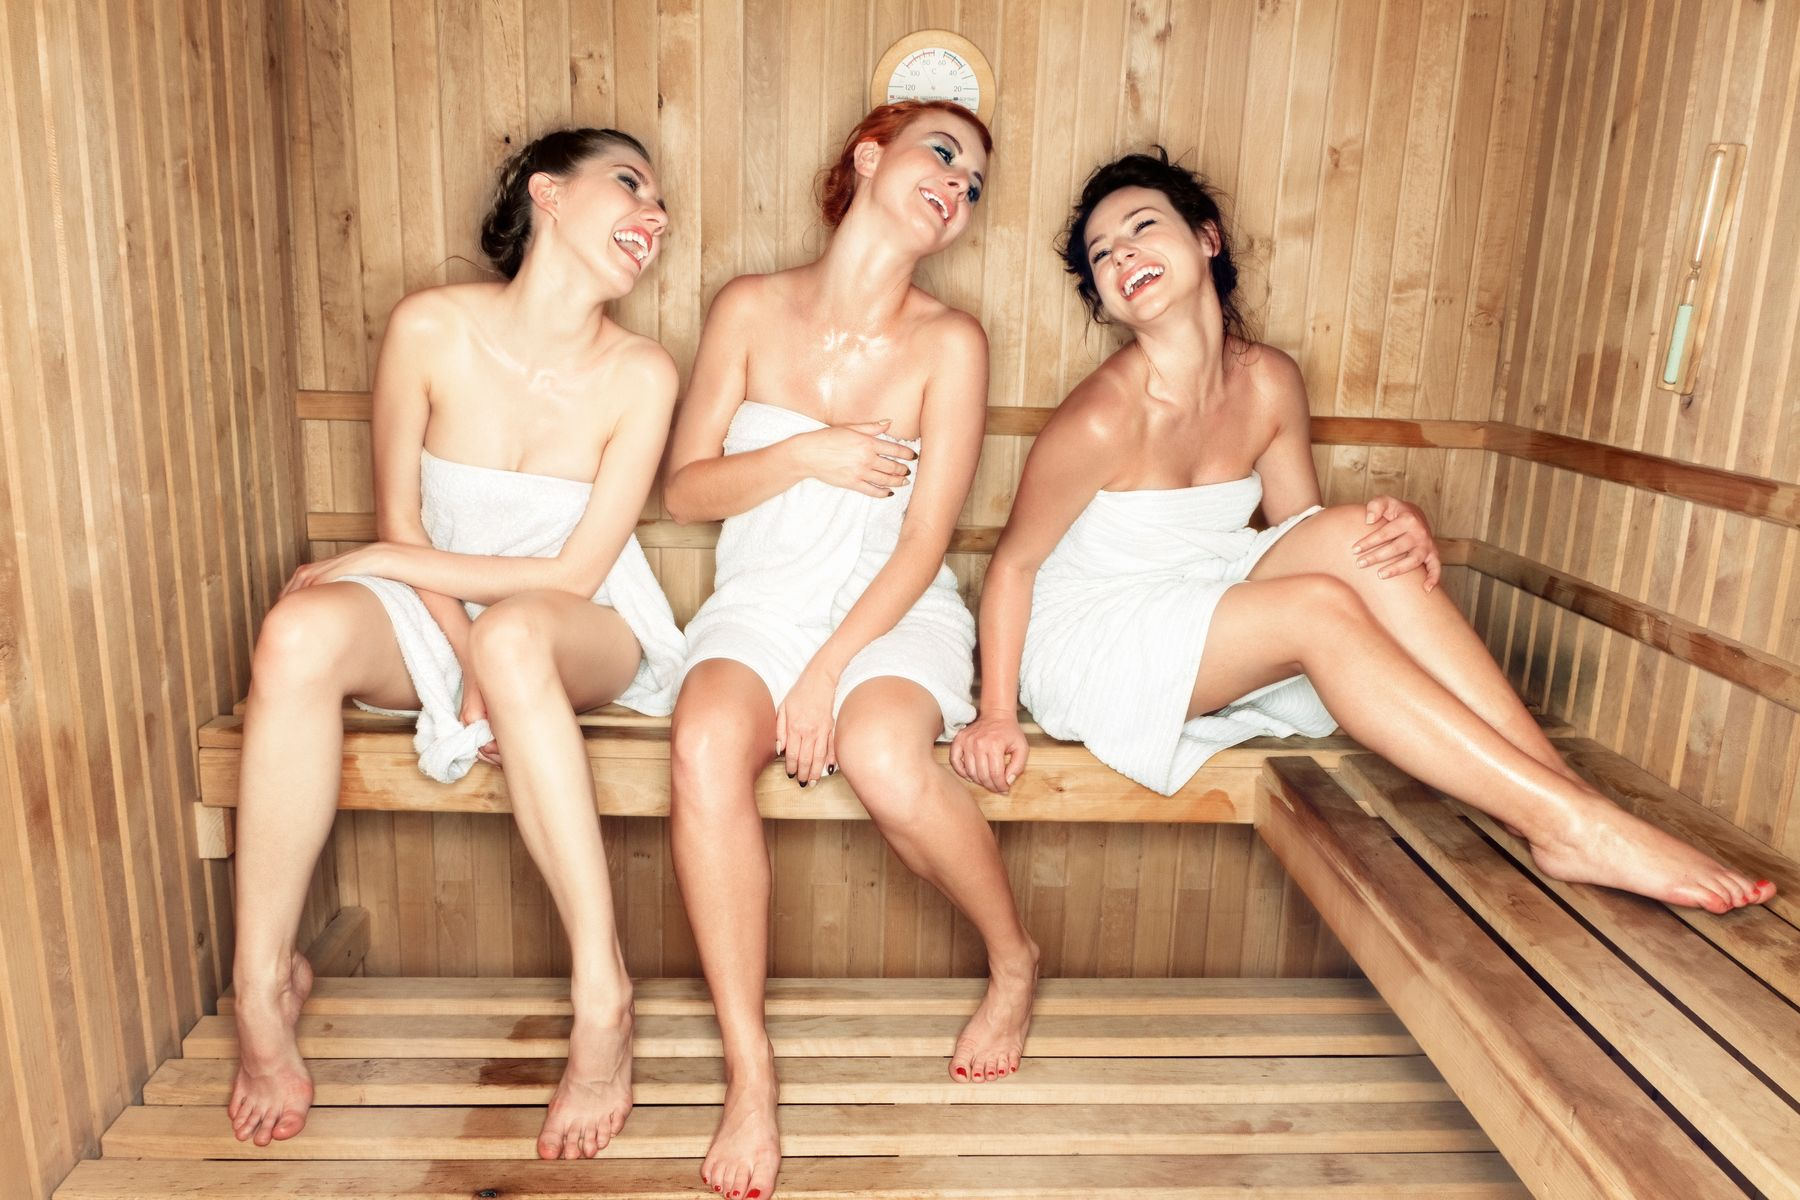 Relax with your friends in Barcelona's best spas